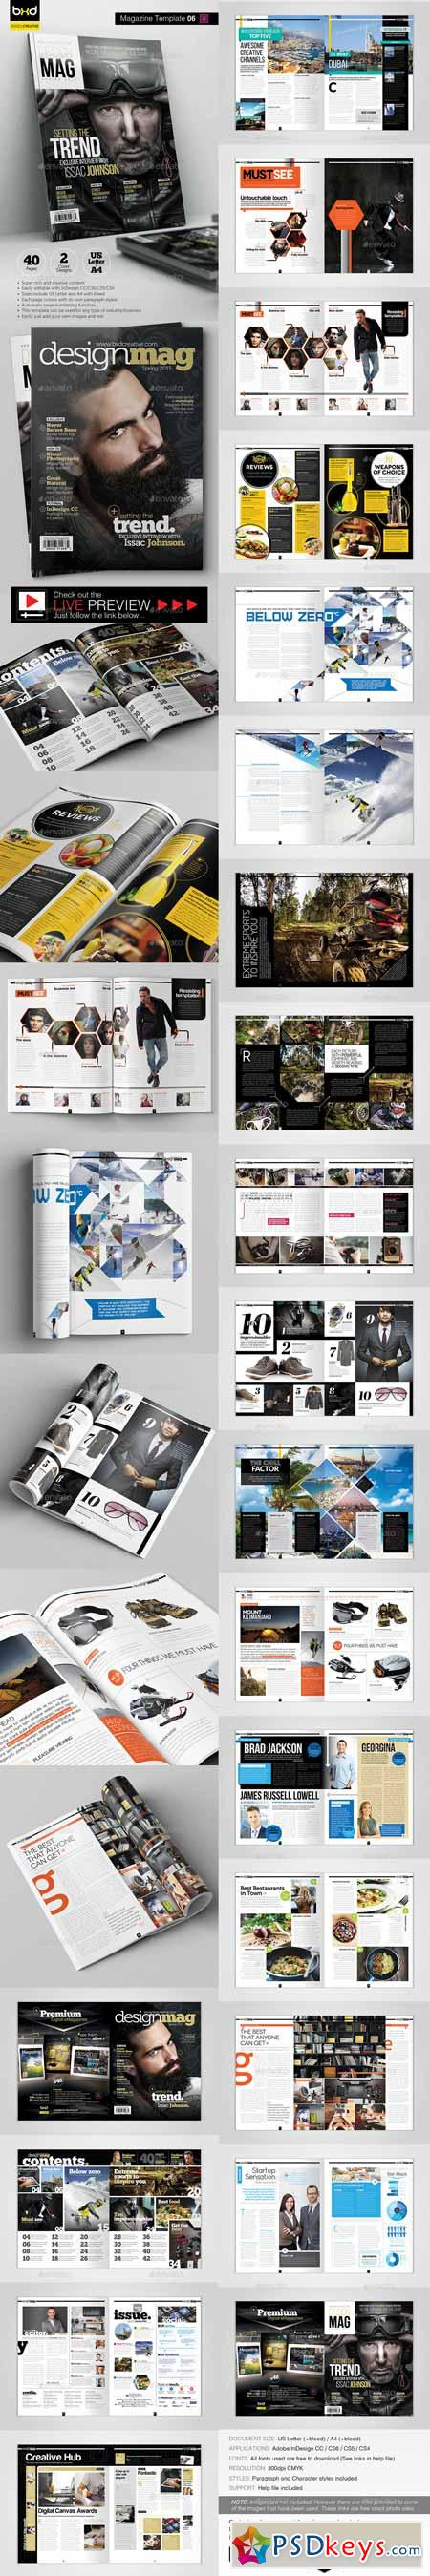 Magazine Template - InDesign 40 Page Layout V6 10374588 » Free ...